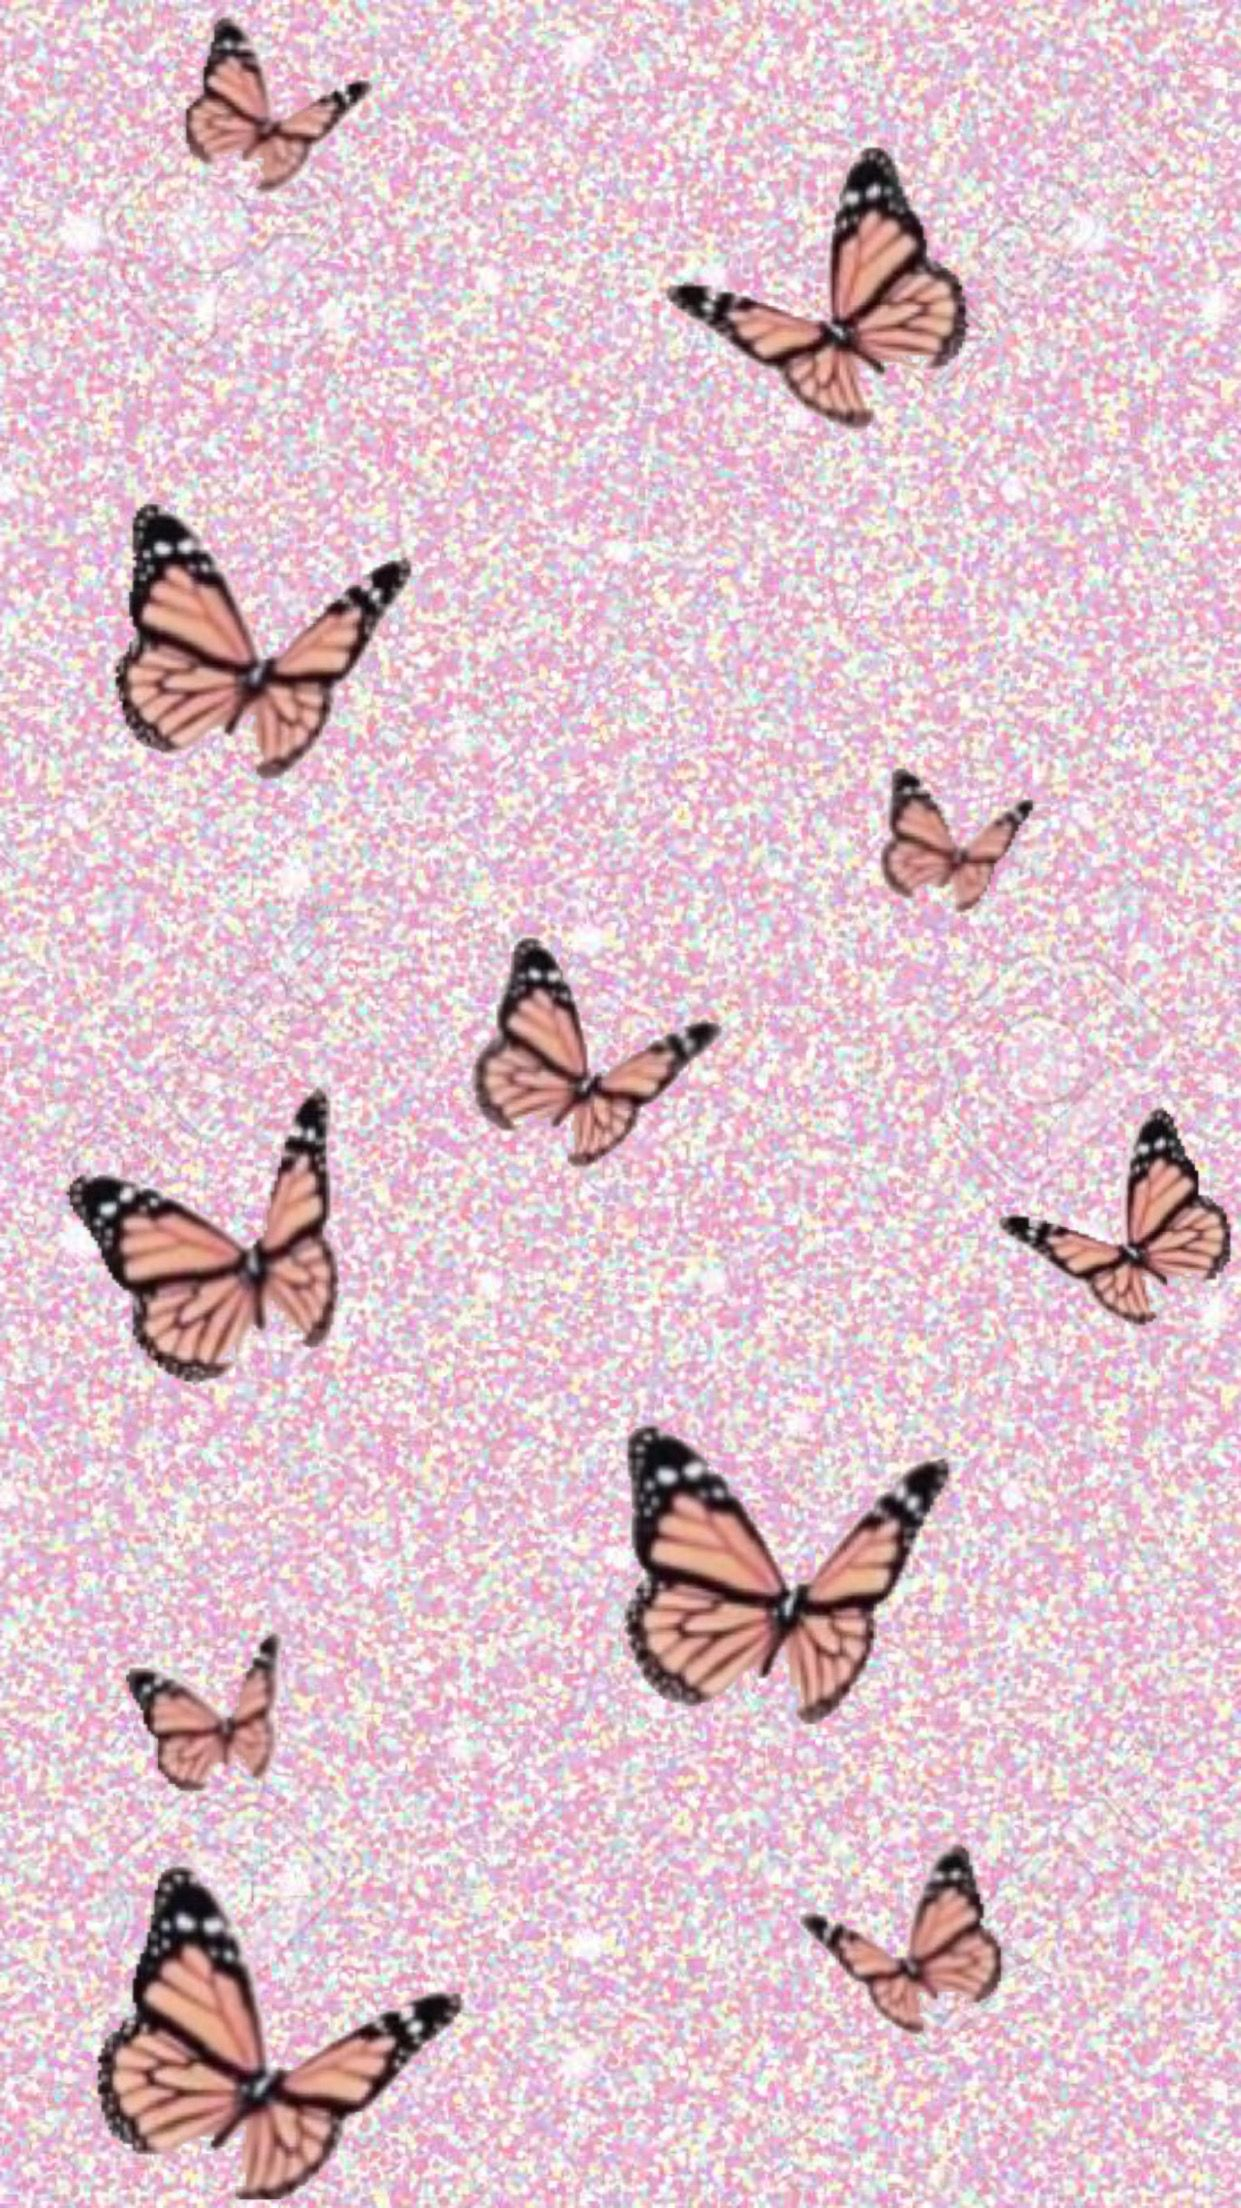 Pinterest Alexasparadise In 2020 Butterfly Wallpaper Iphone Iphone Wallpaper Tumblr Aesthetic Aesthetic Iphone Wallpaper